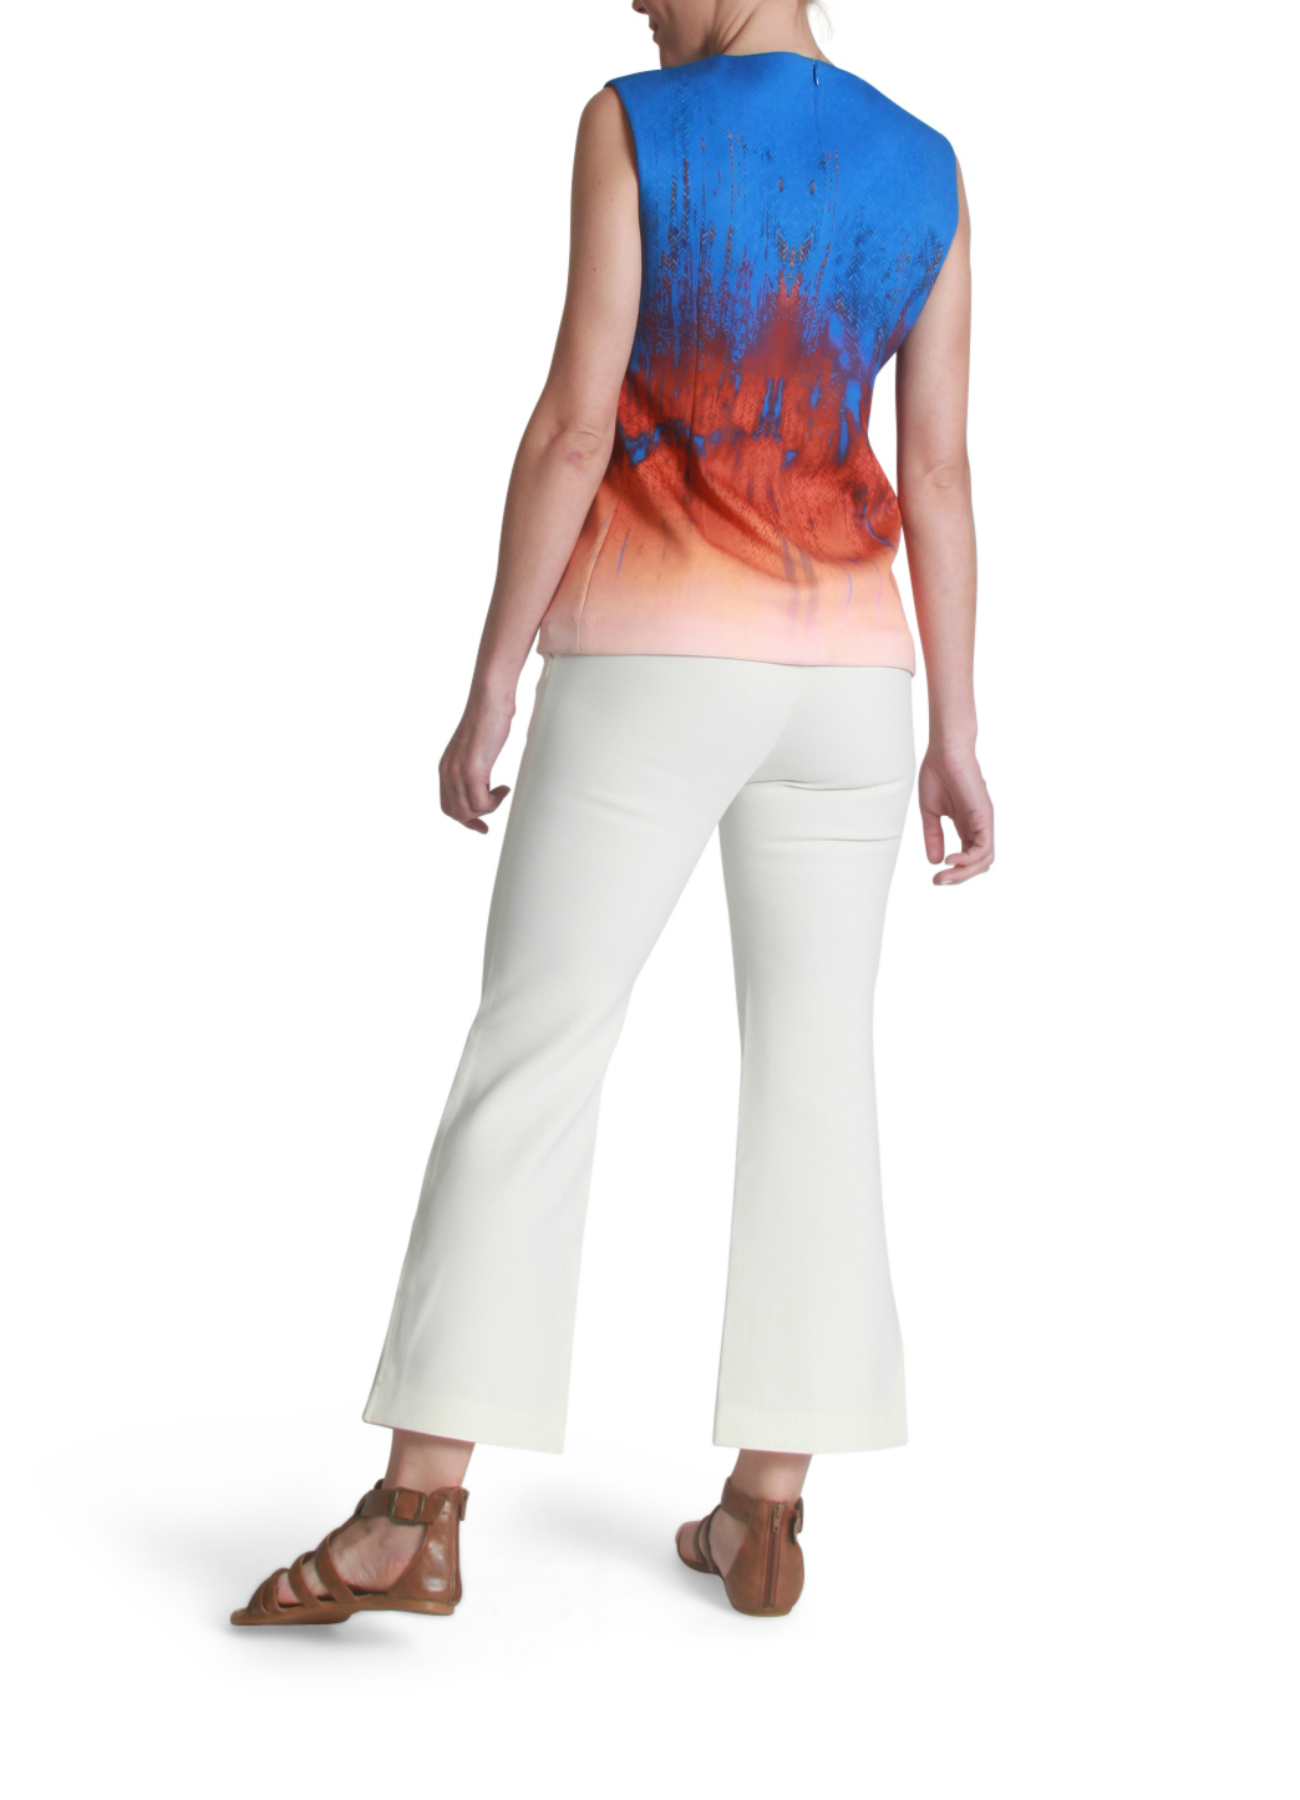 Neoprene graphic top